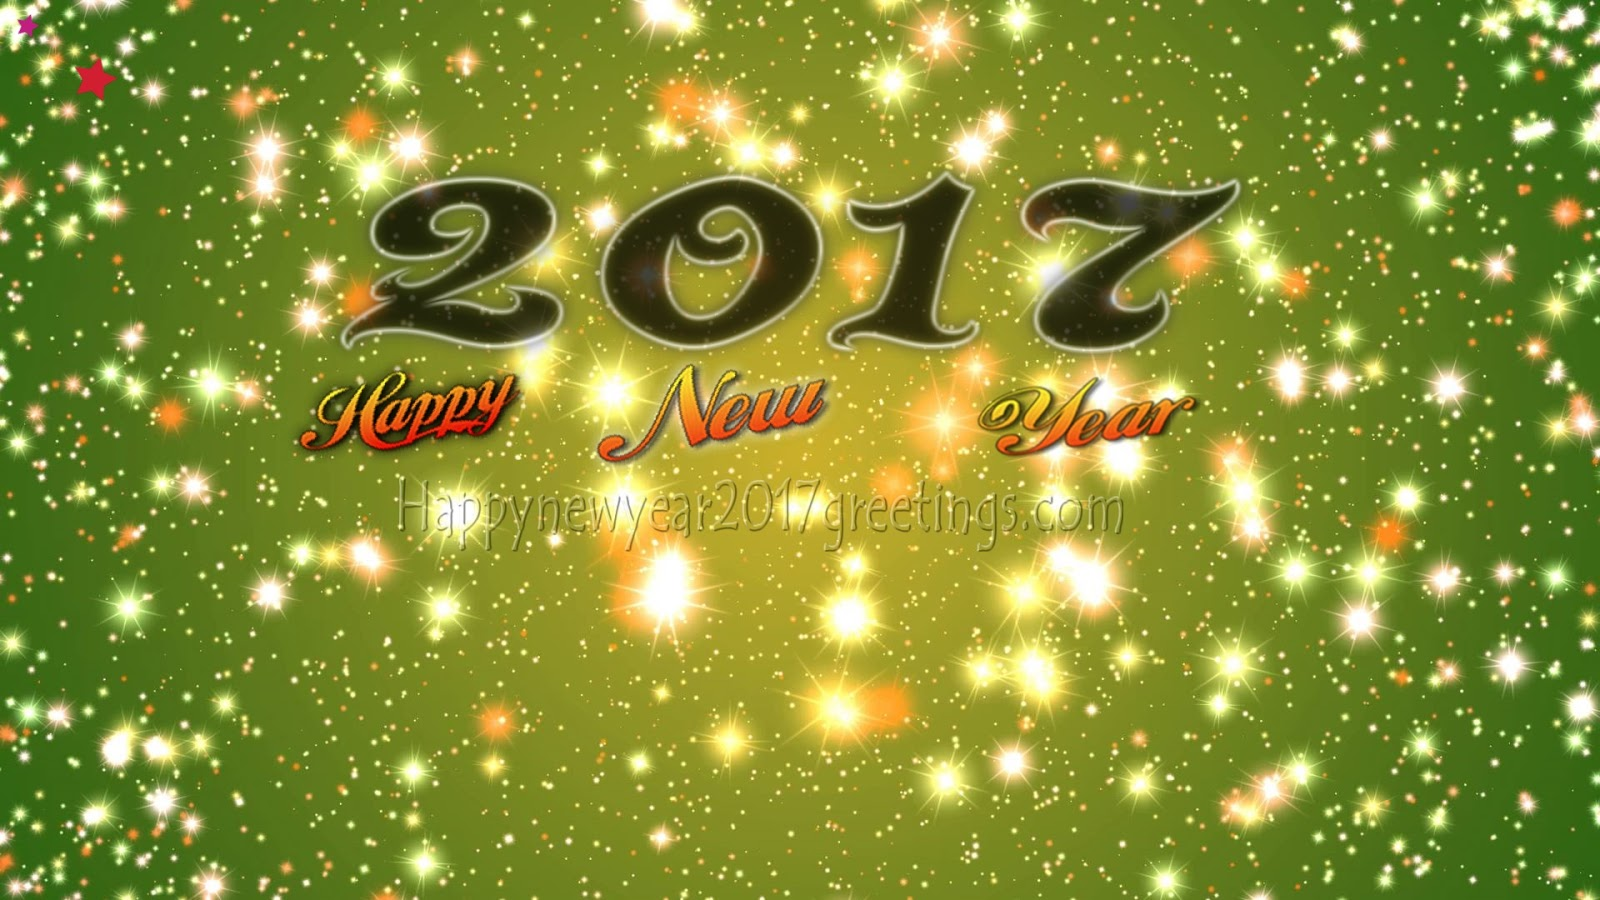 Wallpaper download free image search 2017 - New Year 2018 Sparkling Desktop Background Wallpapers New Year 2018 Hd Sparkling Images Download Free Happy New Year 2018 Sparkling Wallpapers Download For